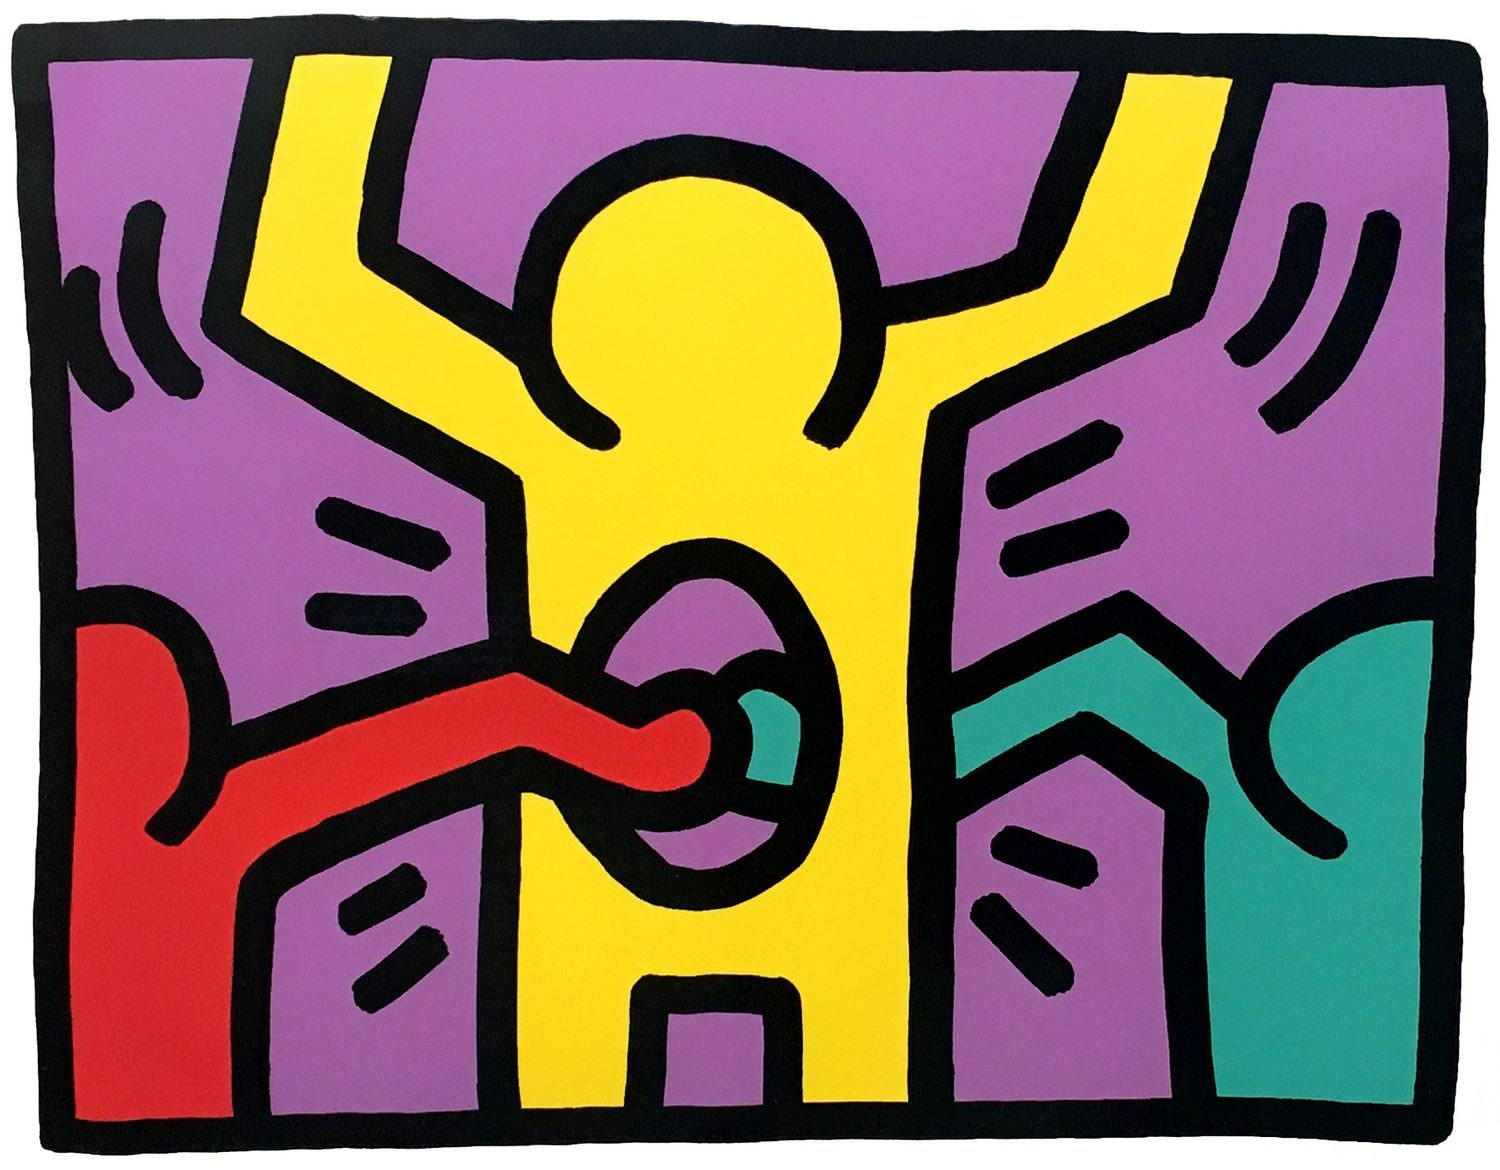 Pop Shop 1, by Keith Haring, 1987